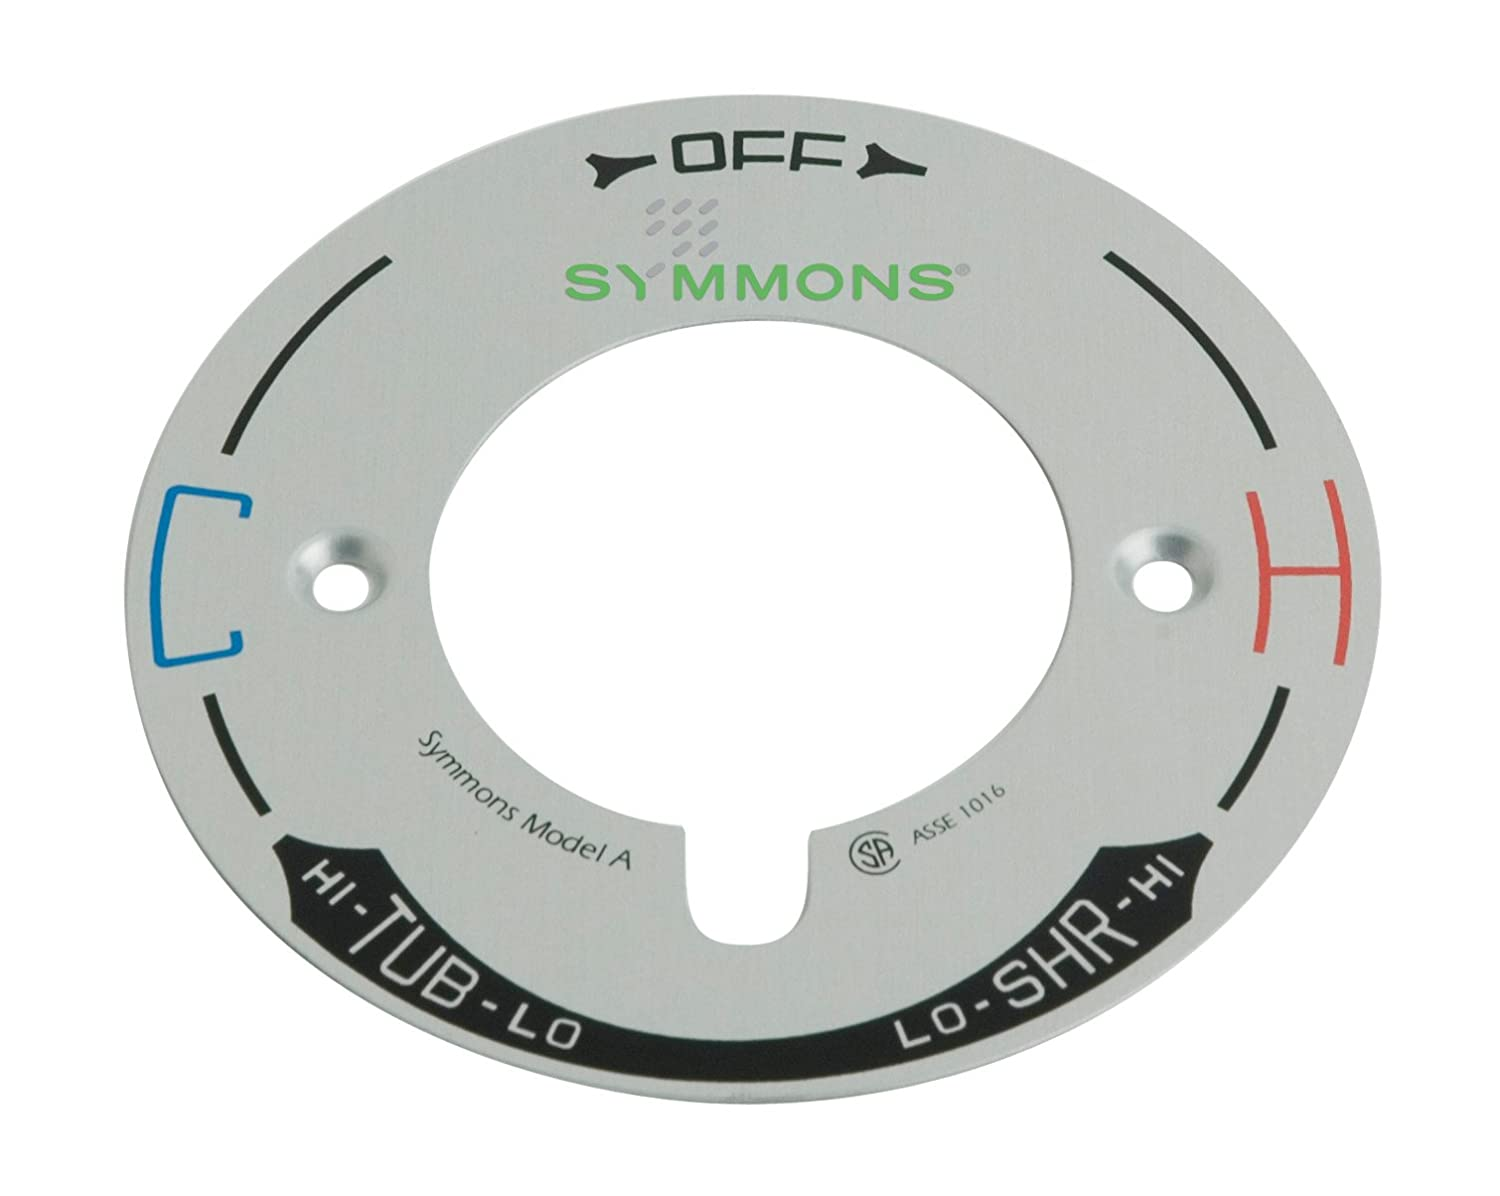 web products allura hand symmons inc system industries shower